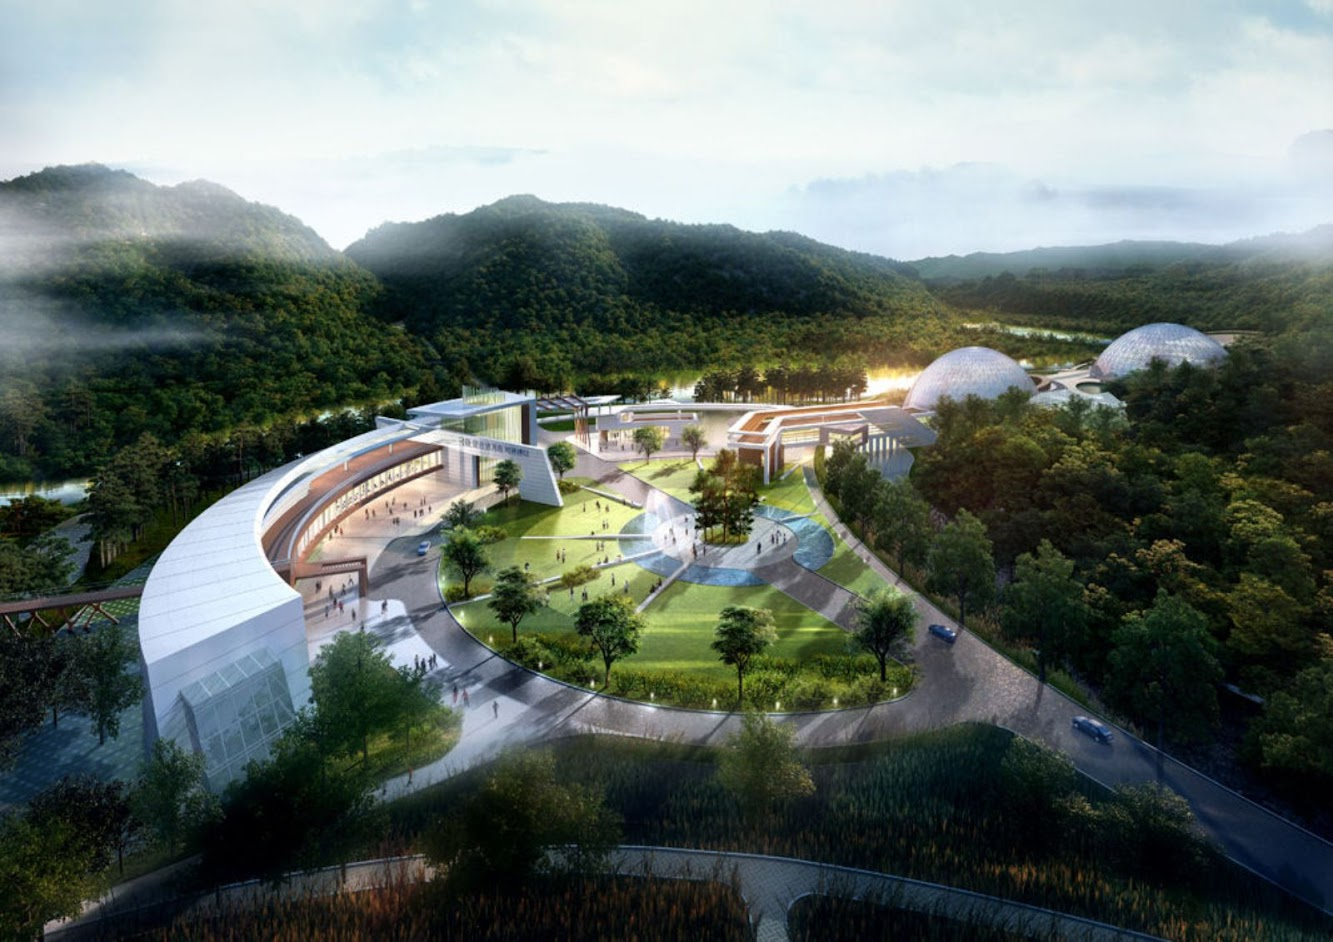 Reserch Centre: NATIONAL RESEARCH CENTER FOR ENDANGERED SPECIES by SAMOO ARCHITECTS